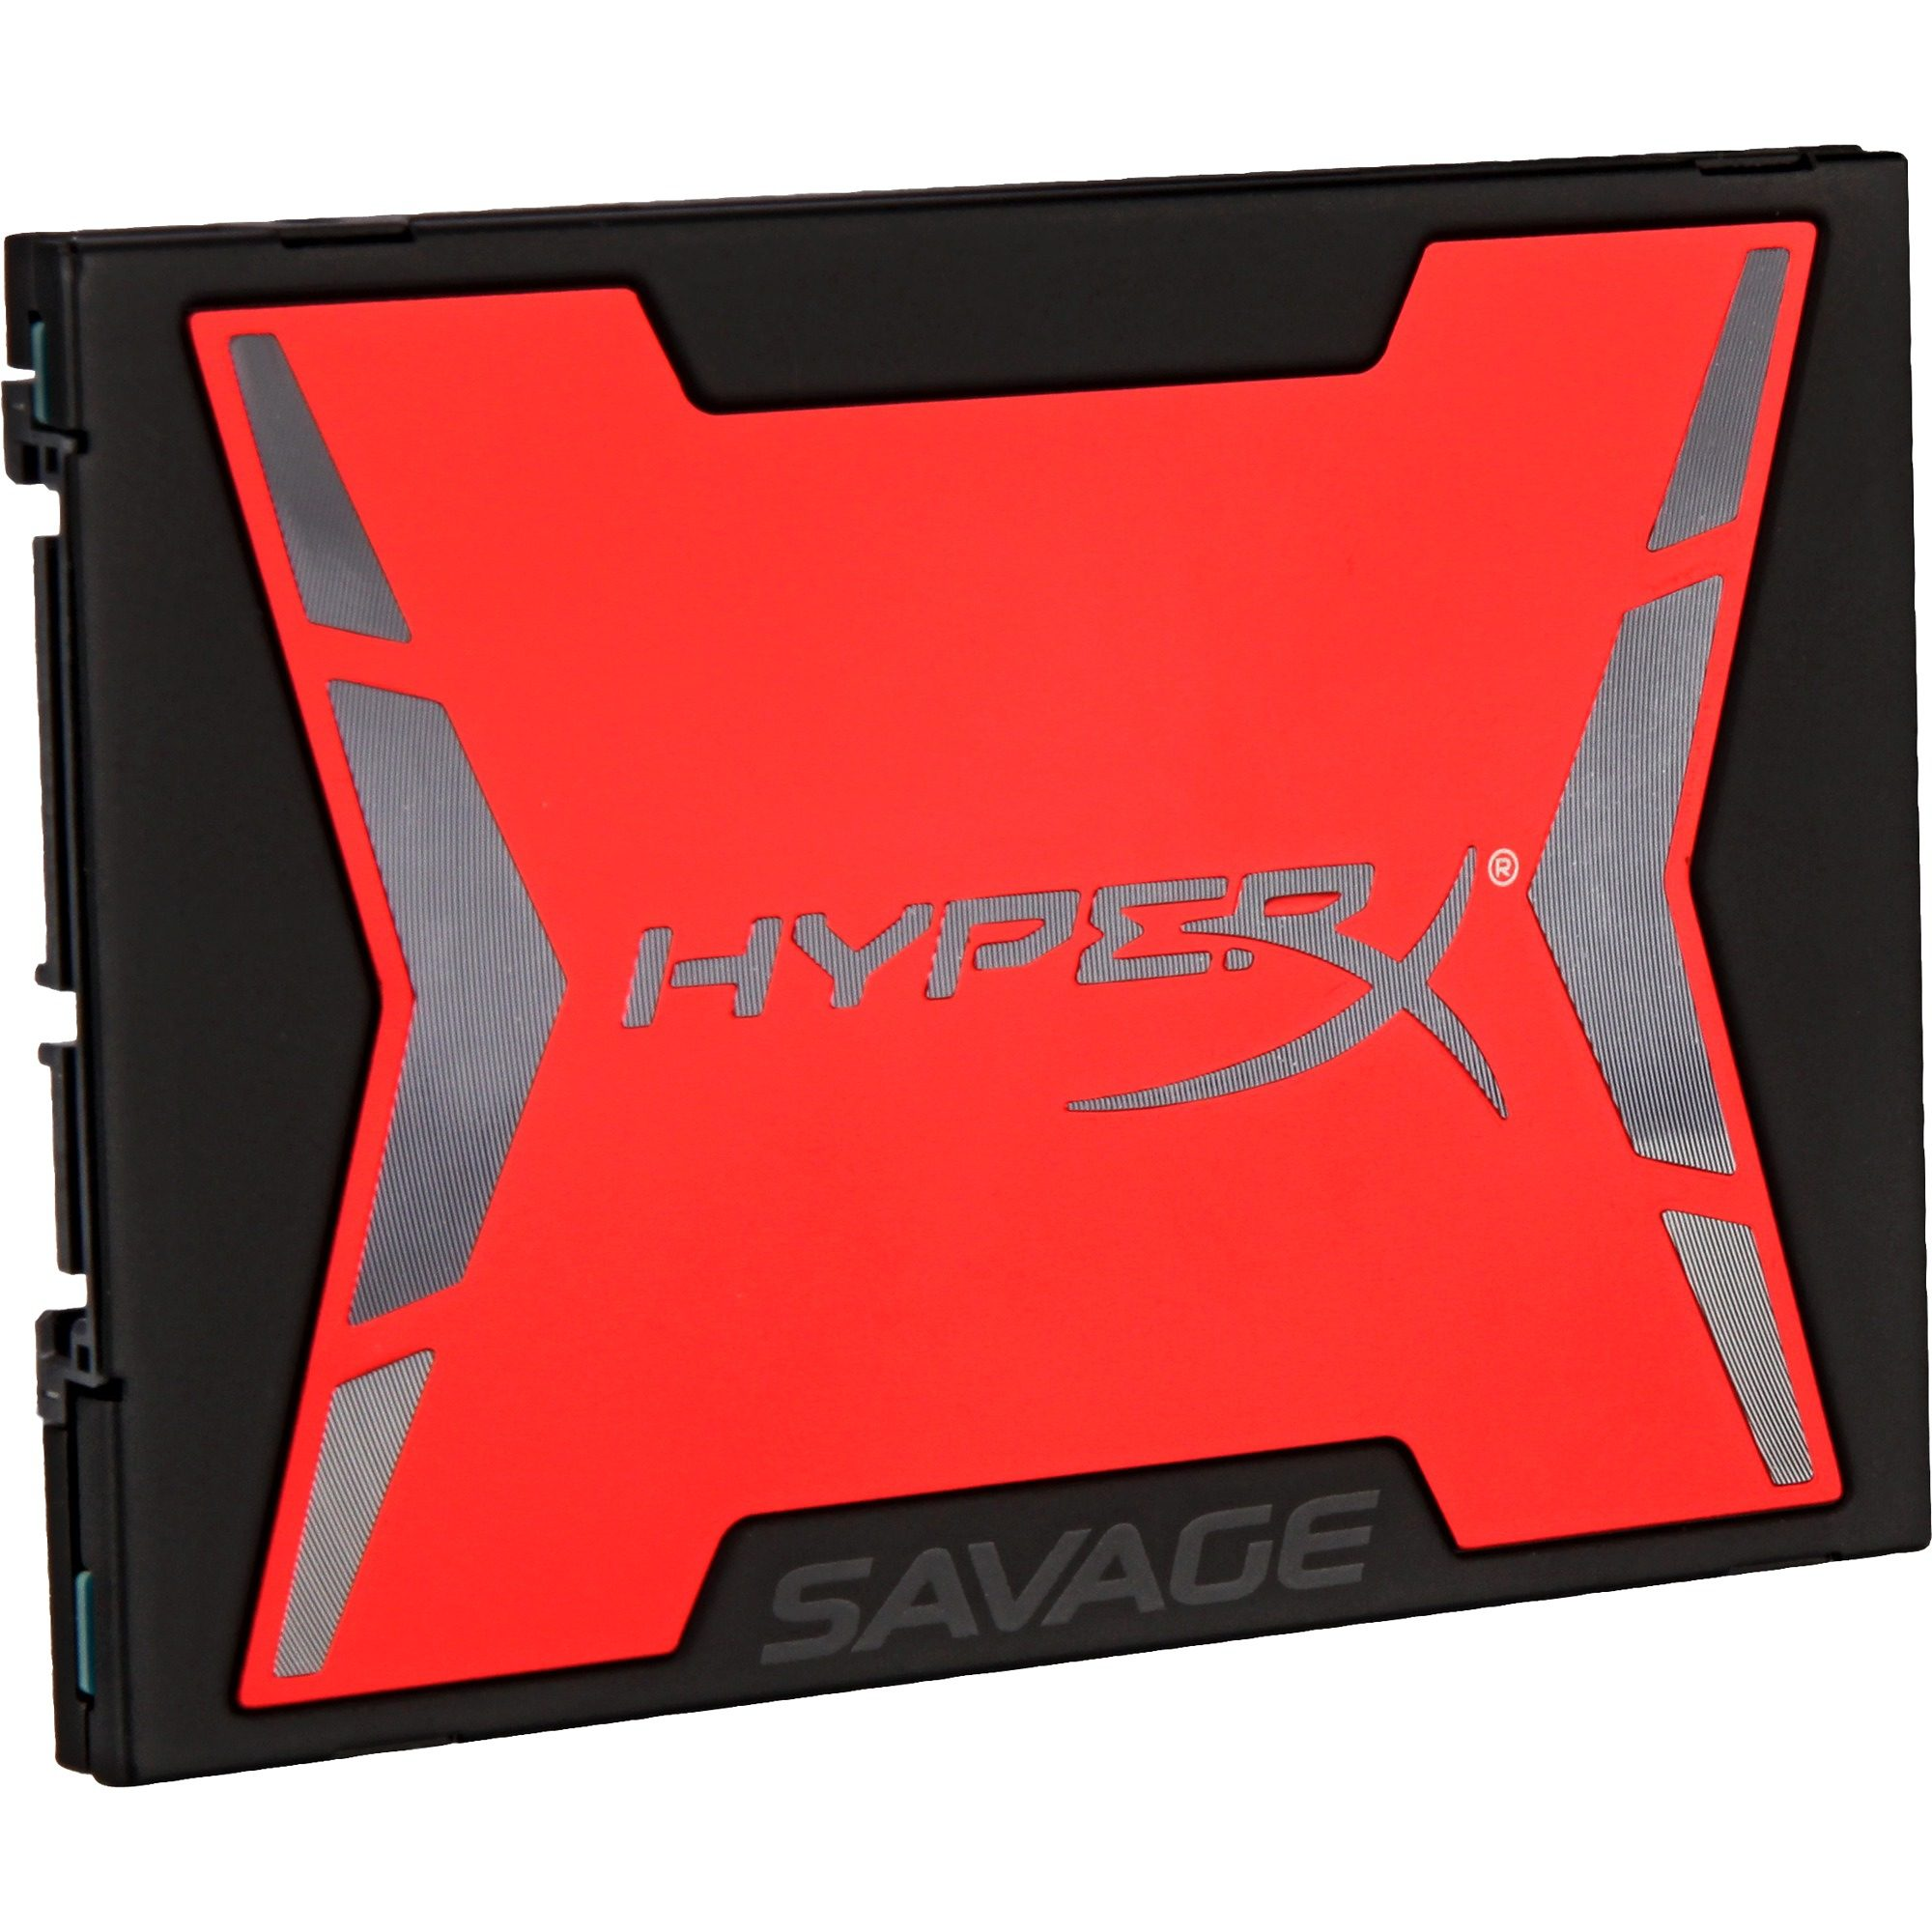 Kingston HyperX Solid State Drive »SHSS37A/240G 240 GB«